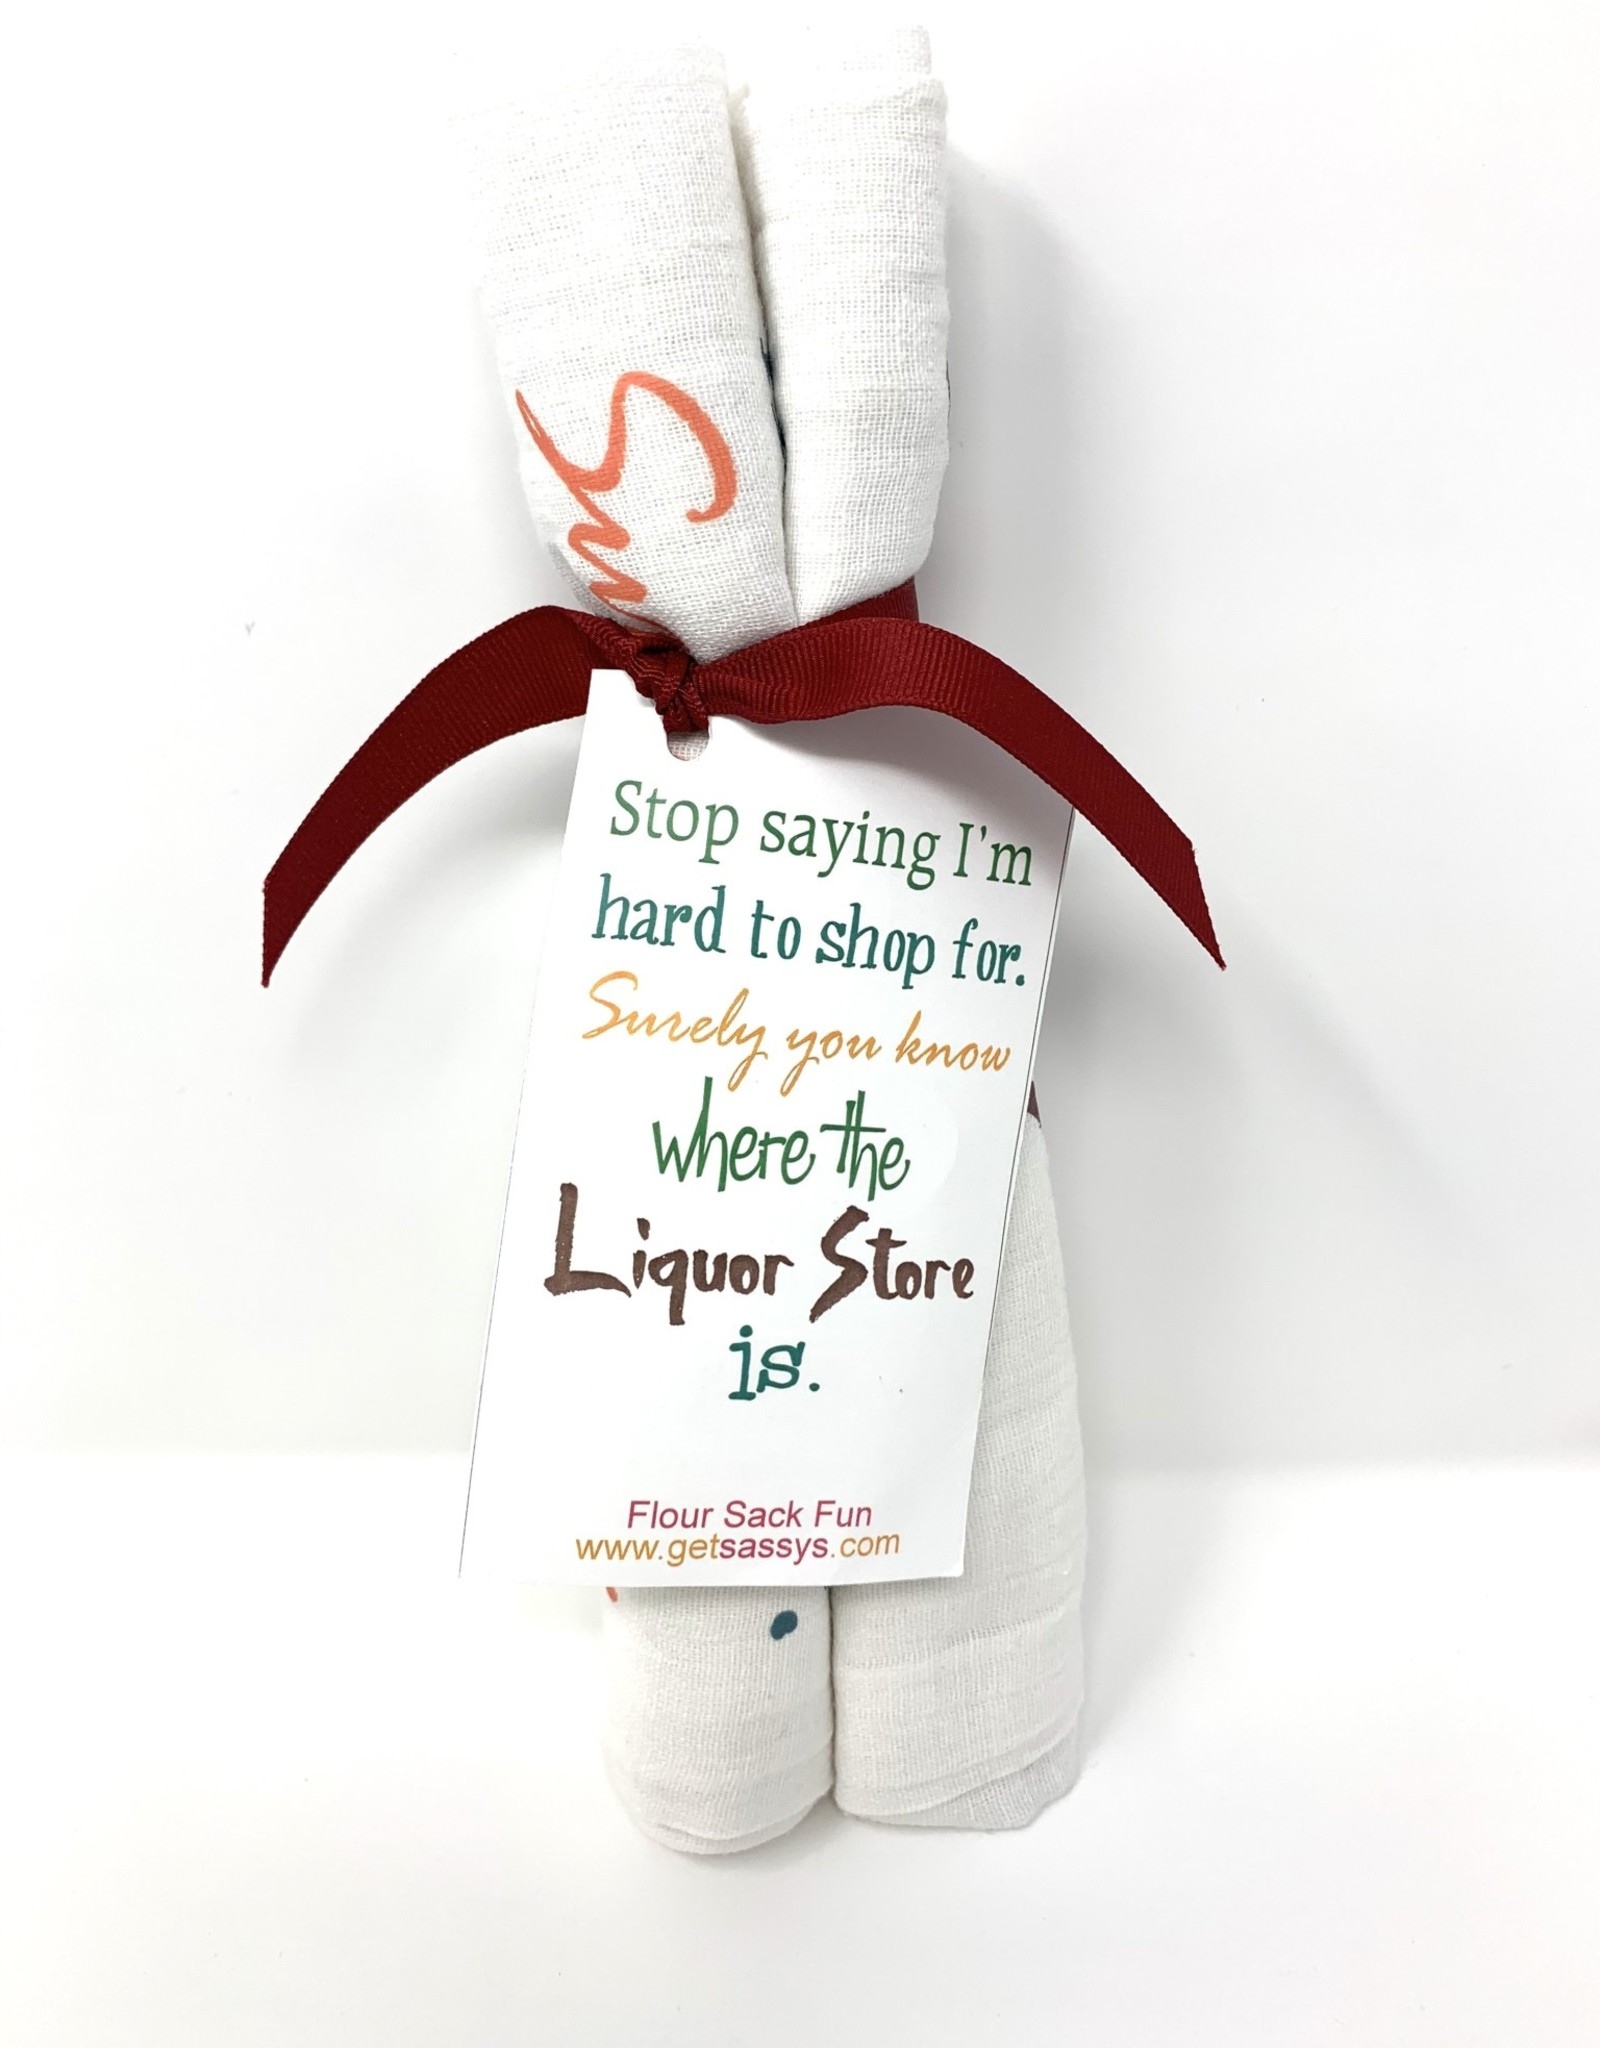 Get Sassy's Get Sassy's Towel Surely You Know Where the Liquor Store Is